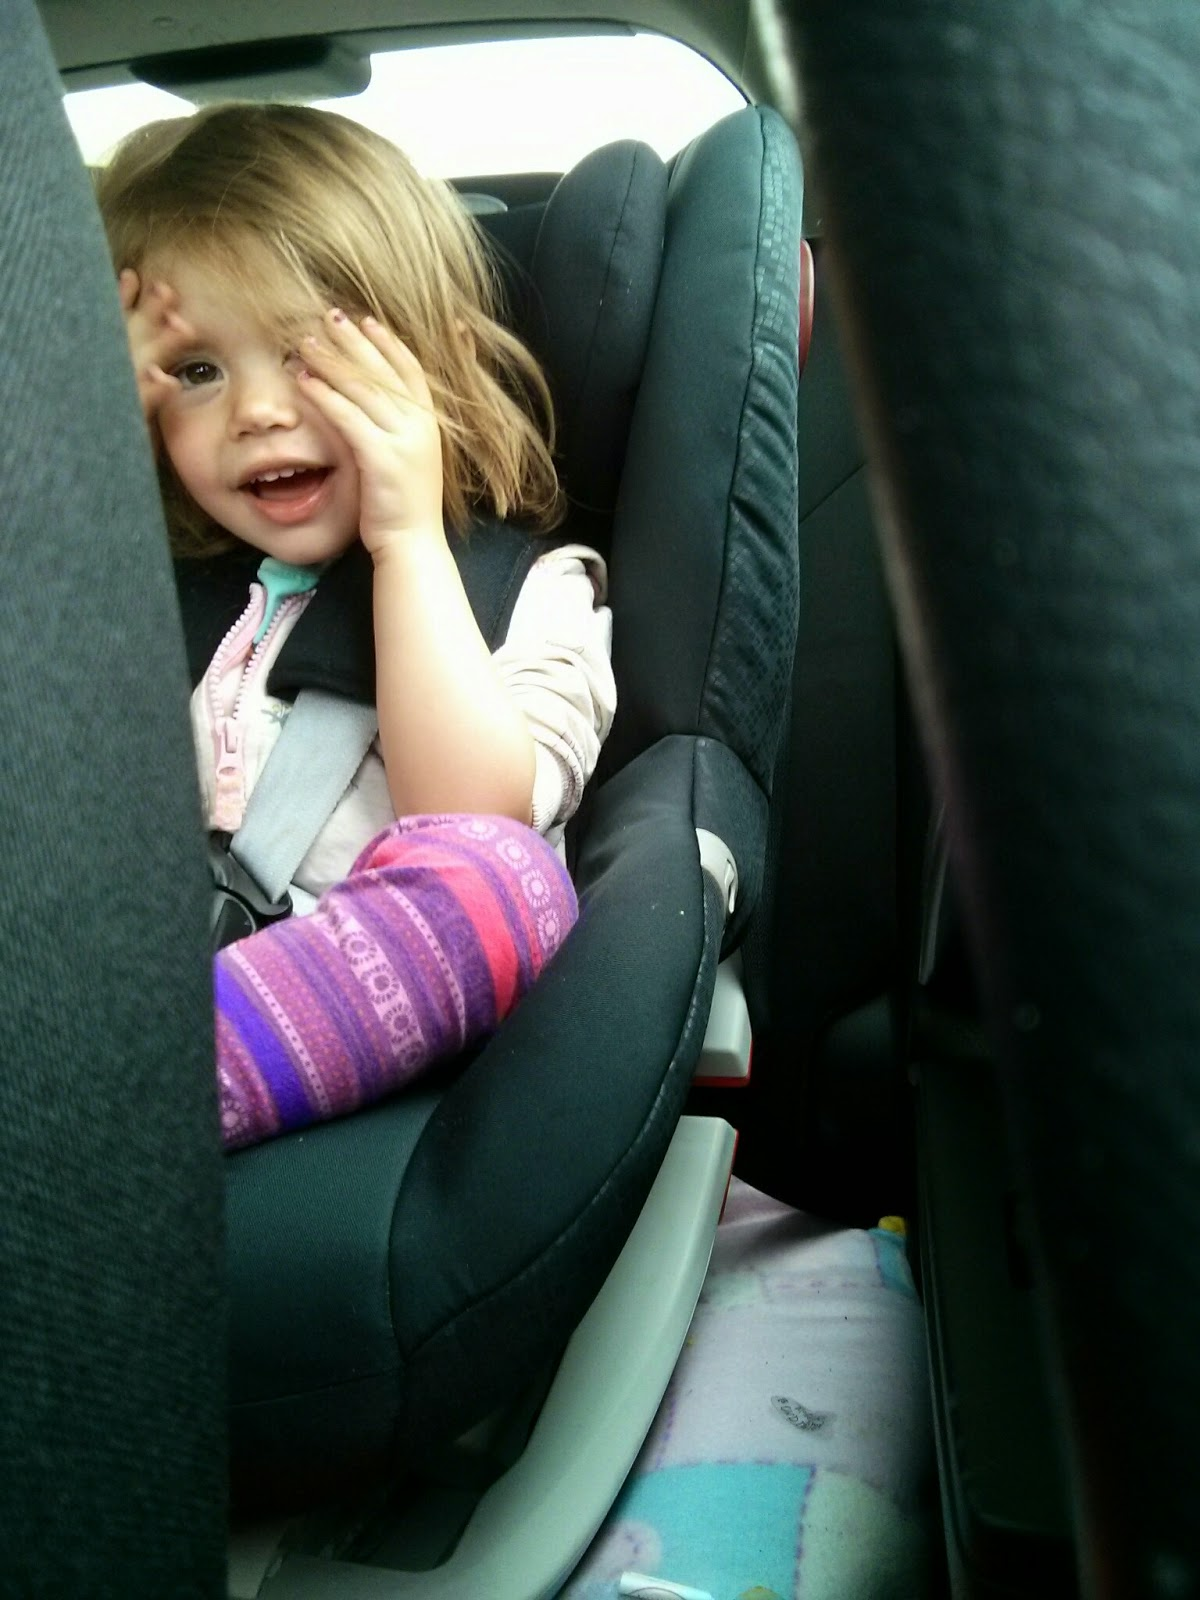 Peekaboo in car seat